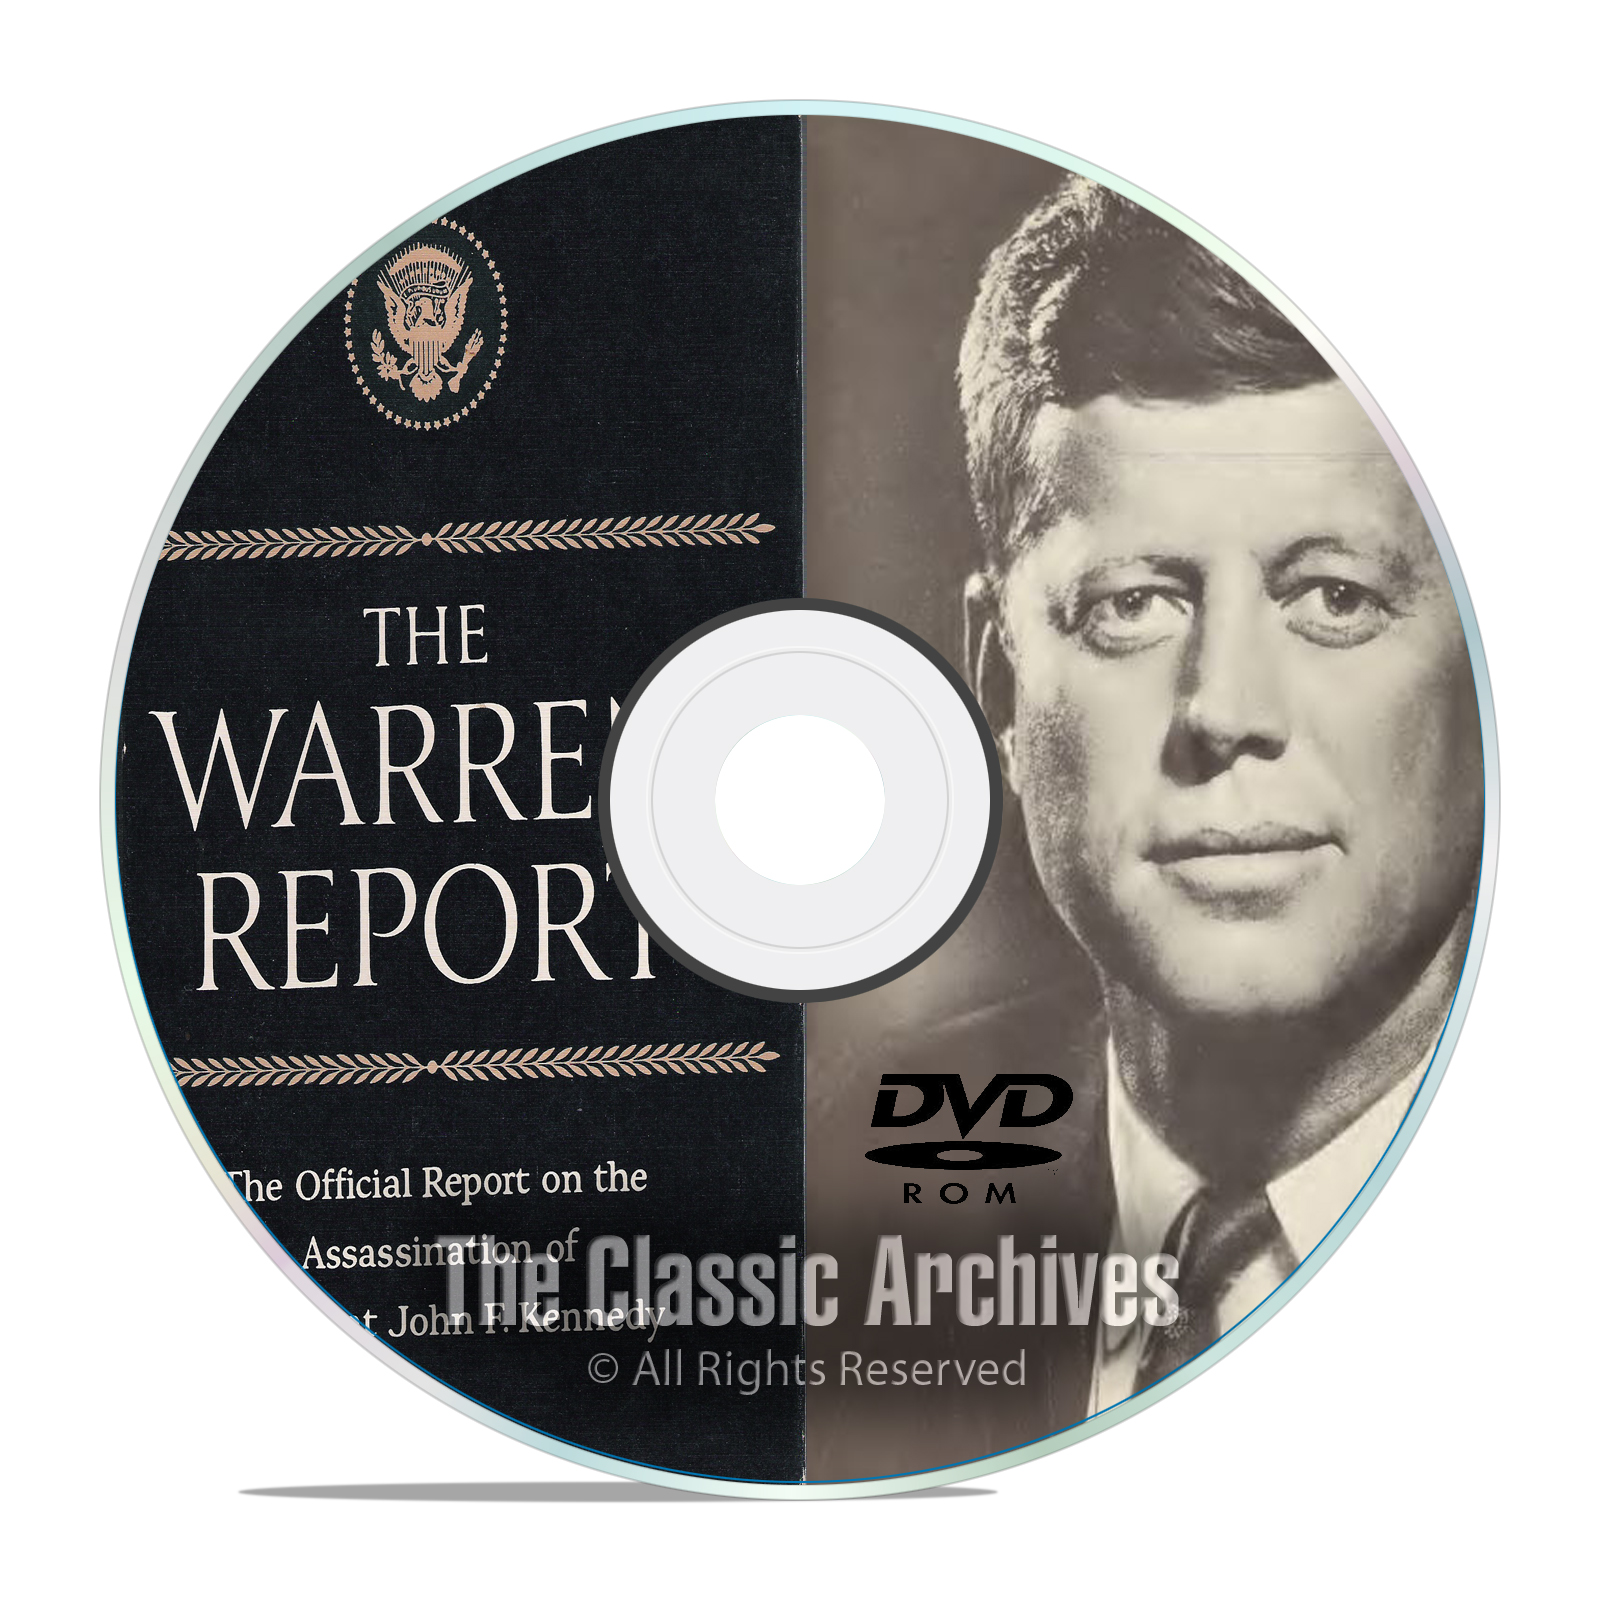 The Full Warren Commission Report, 26 Volumes, Who Killed JFK?, on PDF DVD